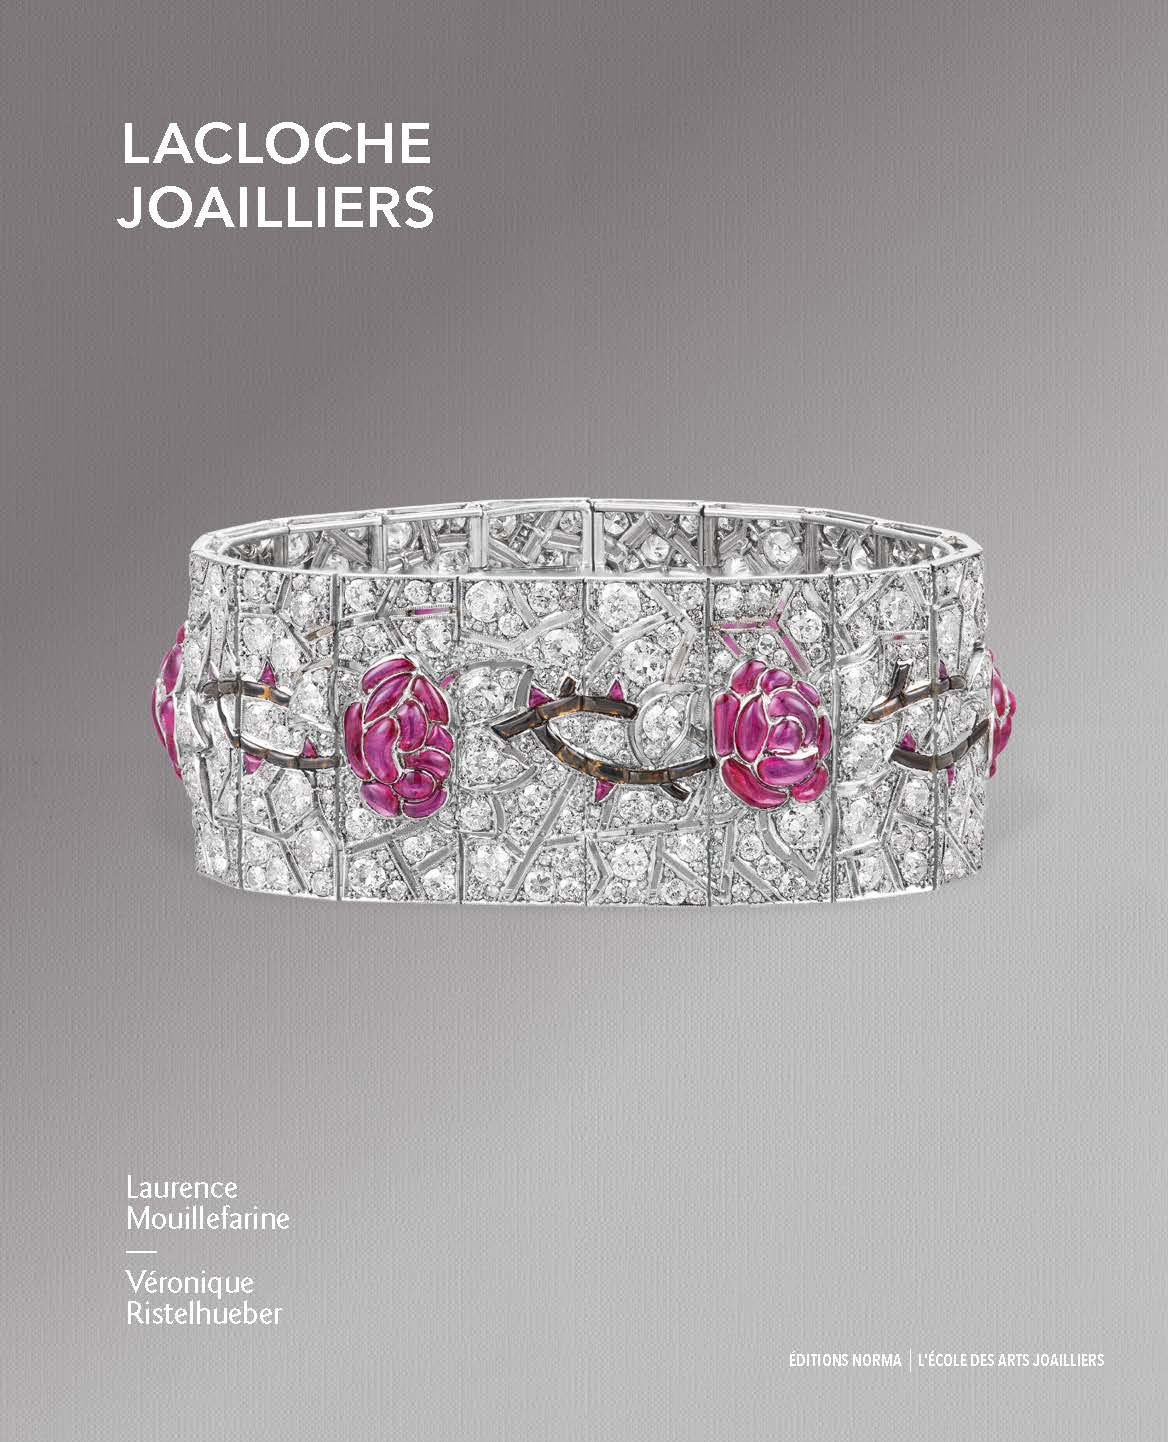 LACLOCHE JOAILLIERS